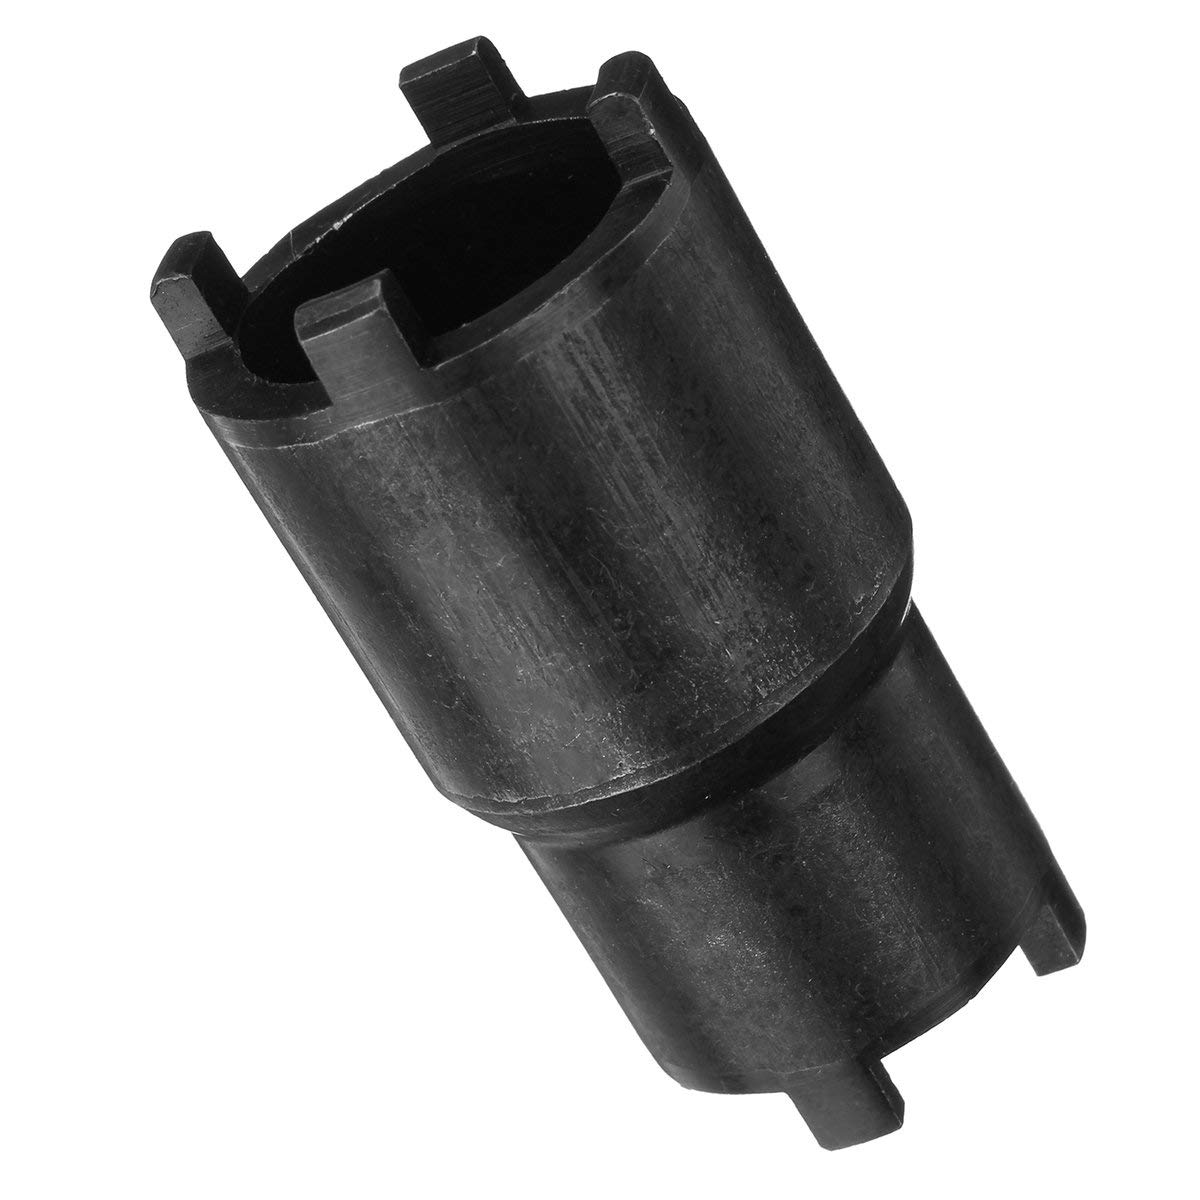 27mm Clutch Lock Spanner Nut Socket Removal Tool Fit ATV Scooter GY6 125 150cc